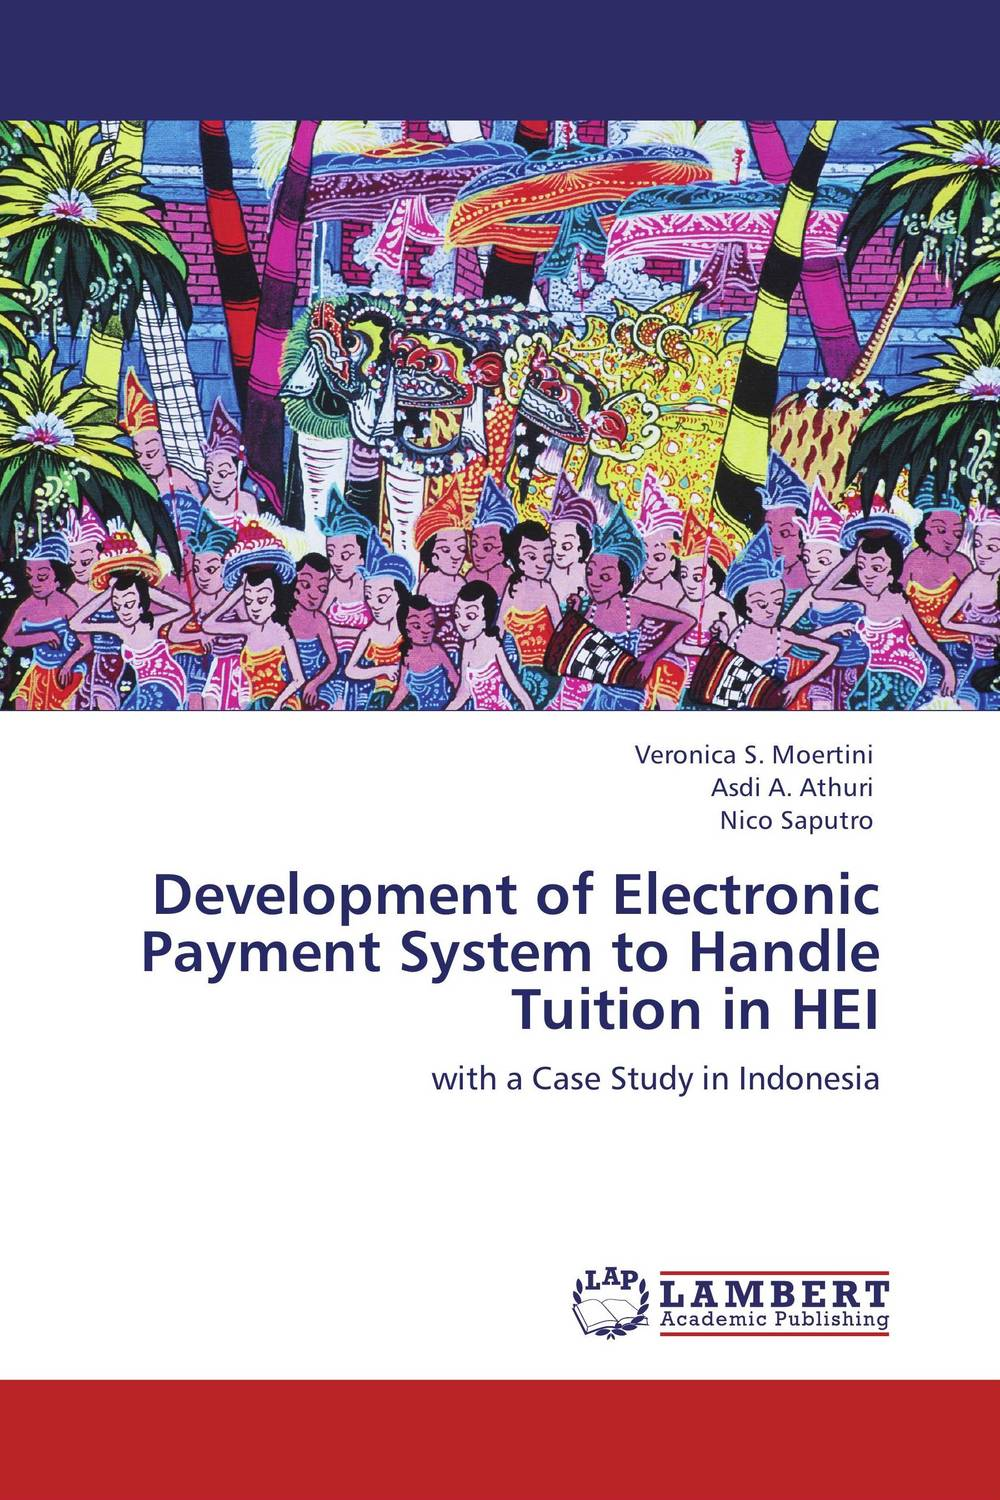 Development of Electronic Payment System to Handle Tuition in HEI elt and development of communicative abilities of university students